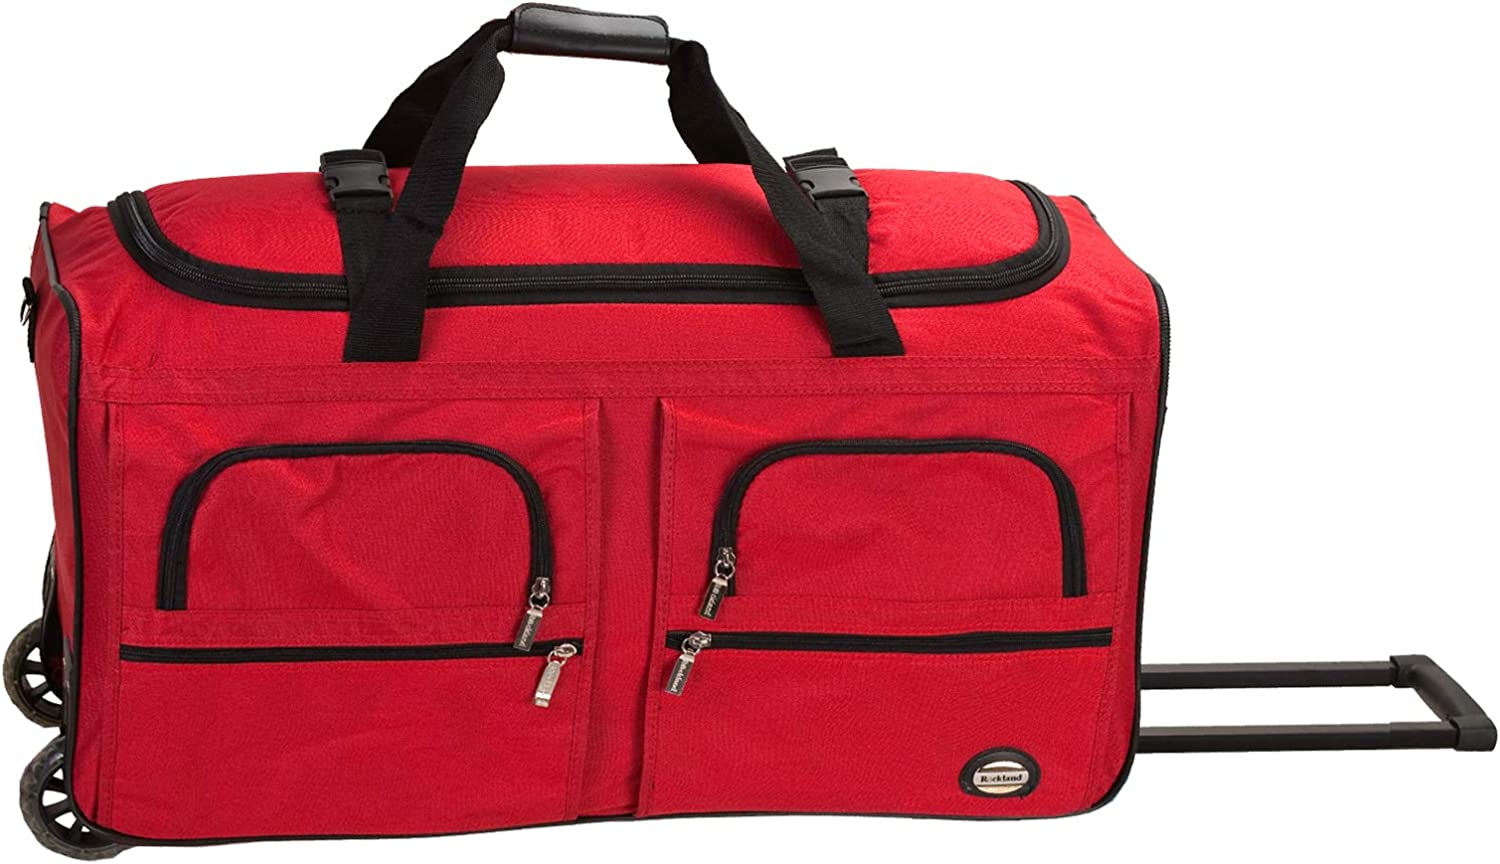 Rockland Rolling Duffel Bag, Red, 36-Inch